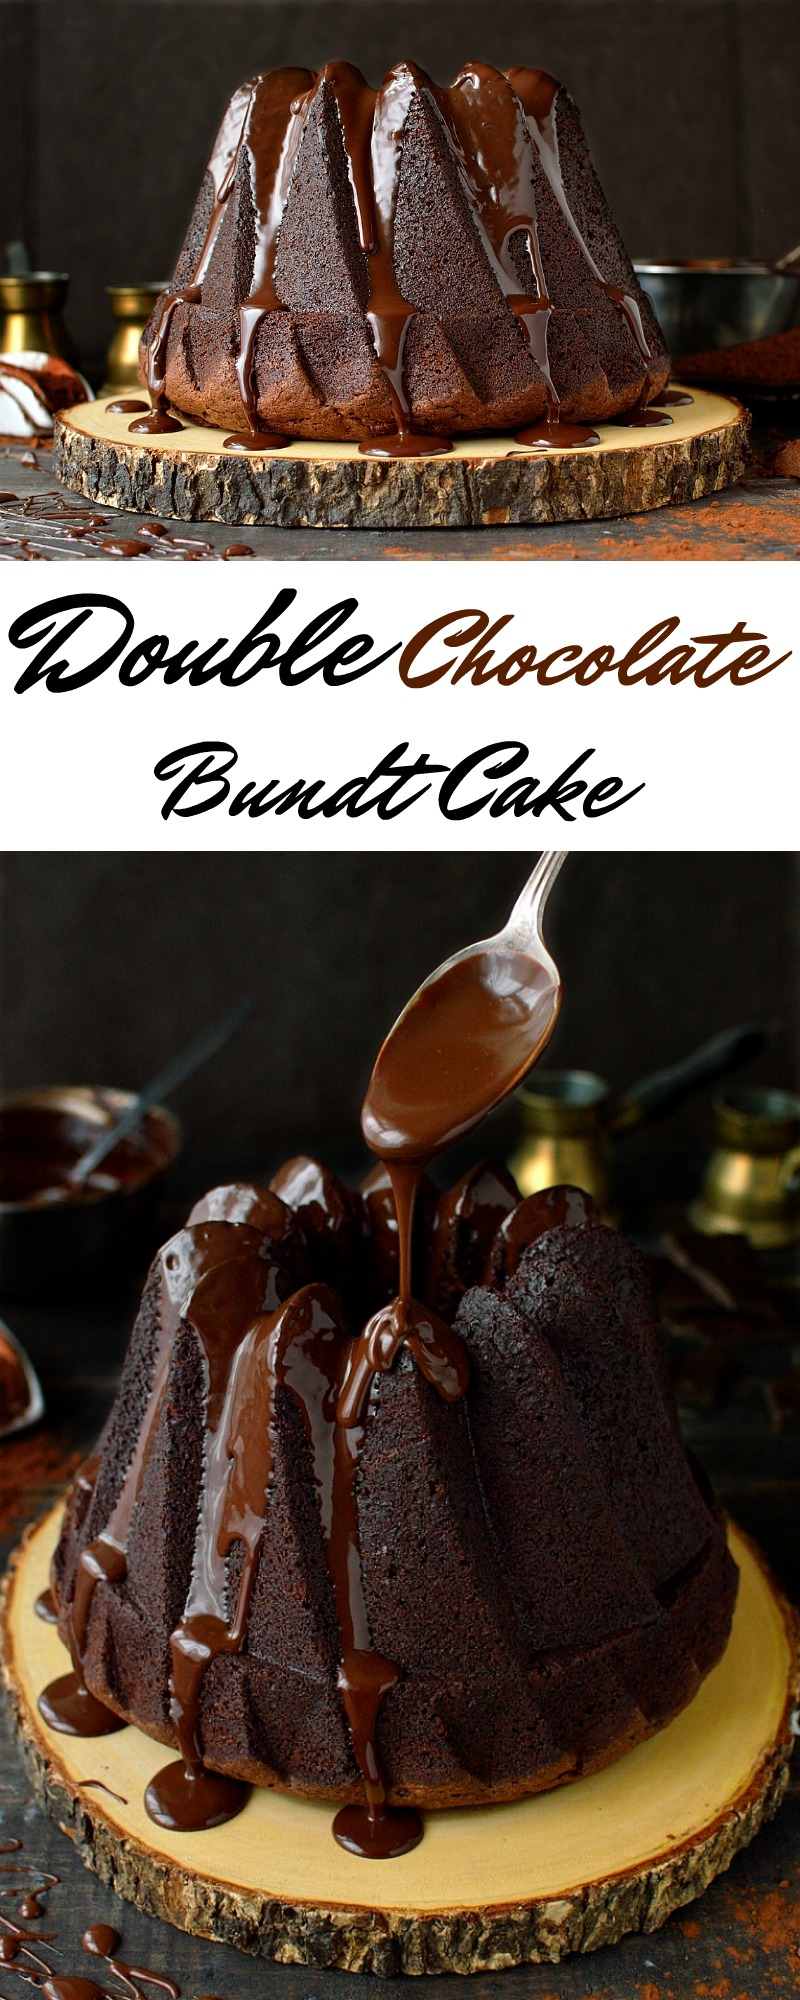 Double chocolate bundt cake - rich, moist sour cream chocolate cake topped with silky smooth dark chocolate ganache.